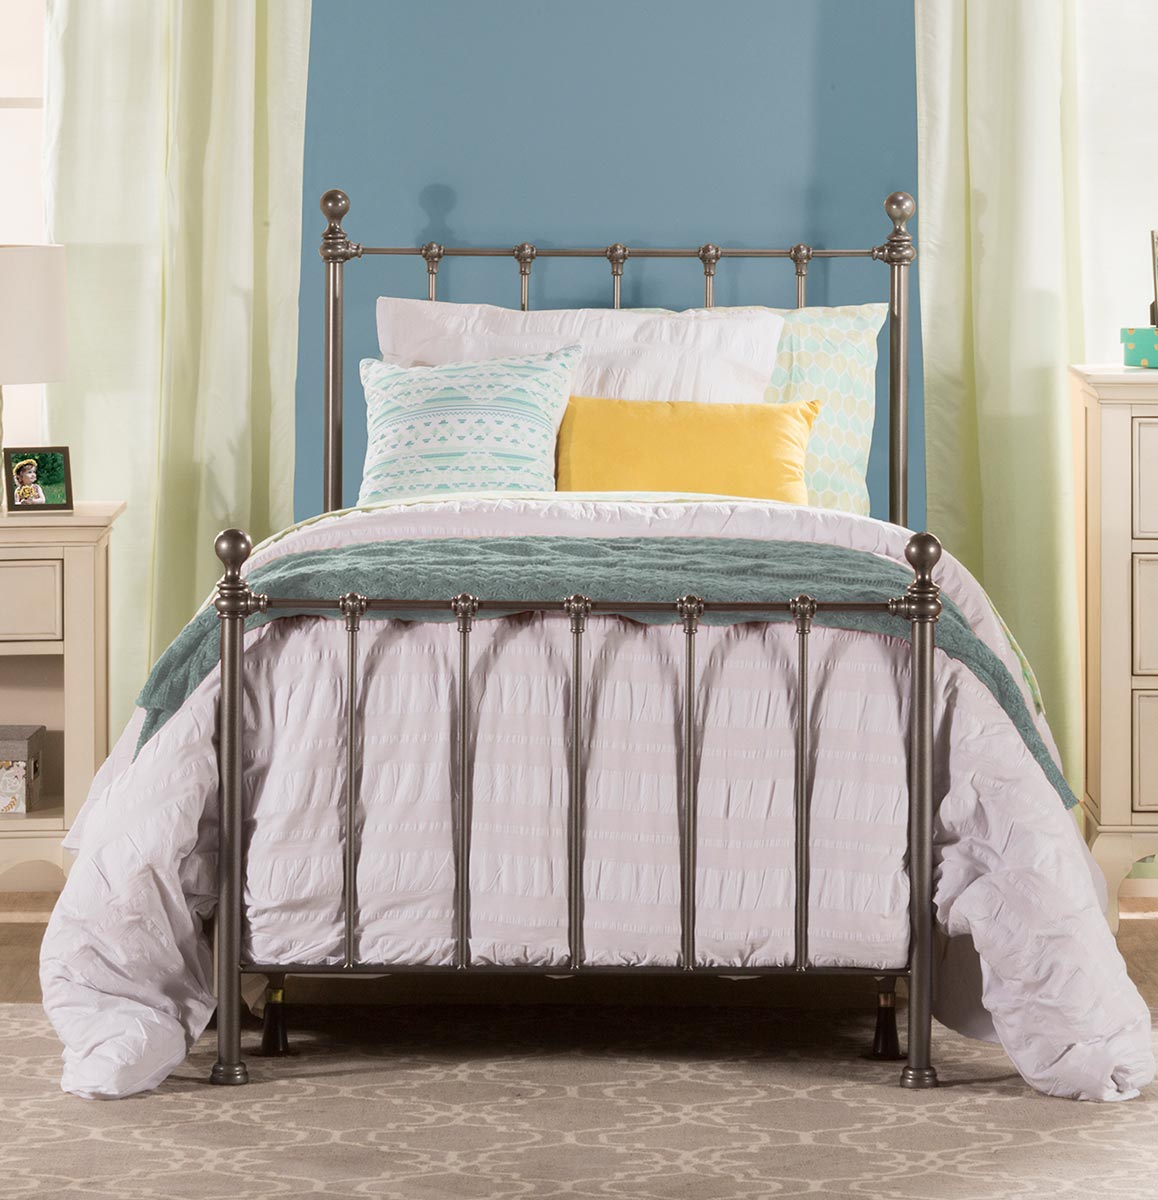 Hillsdale Molly Bed - Black Steel